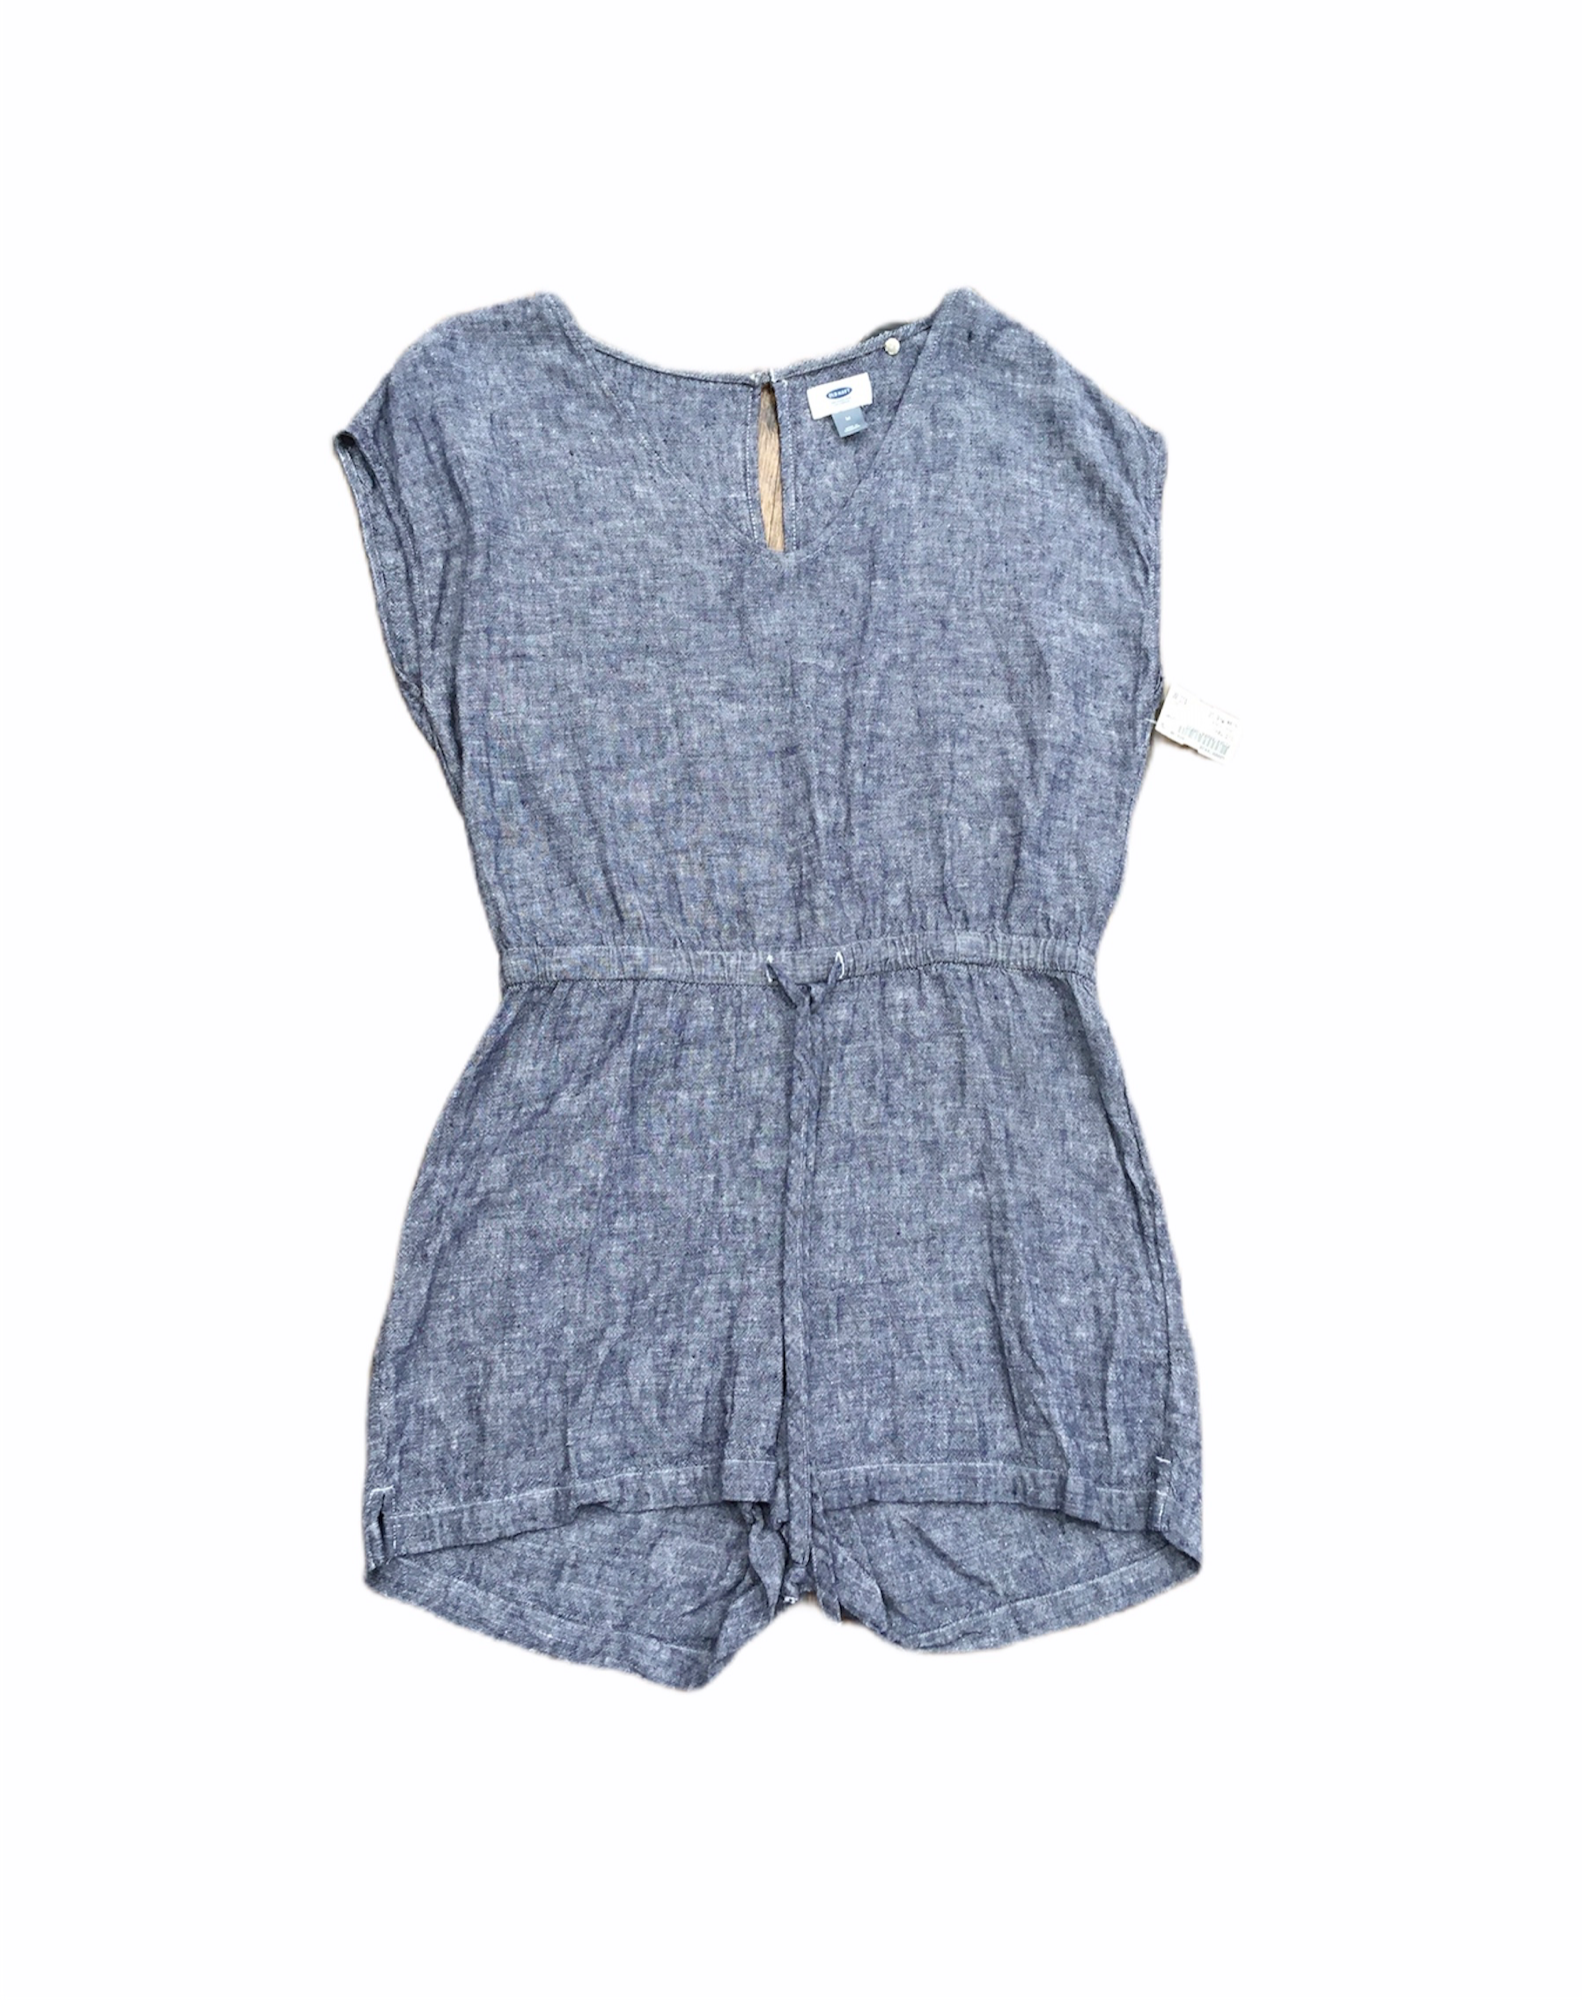 Old Navy Romper Size M (8 10)